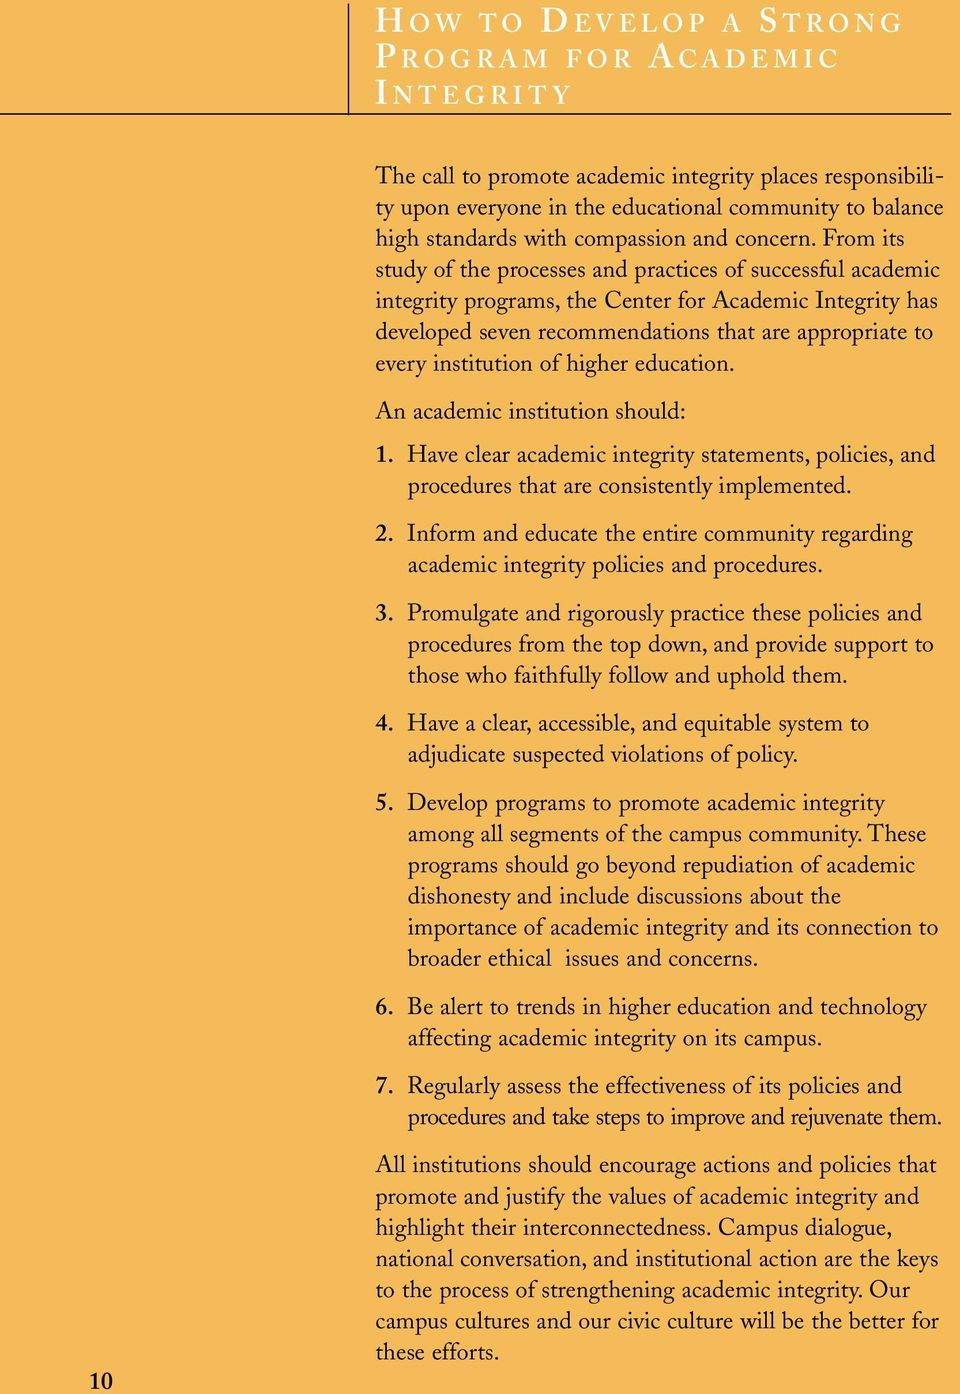 From its study of the processes and practices of successful academic integrity programs, the Center for Academic Integrity has developed seven recommendations that are appropriate to every